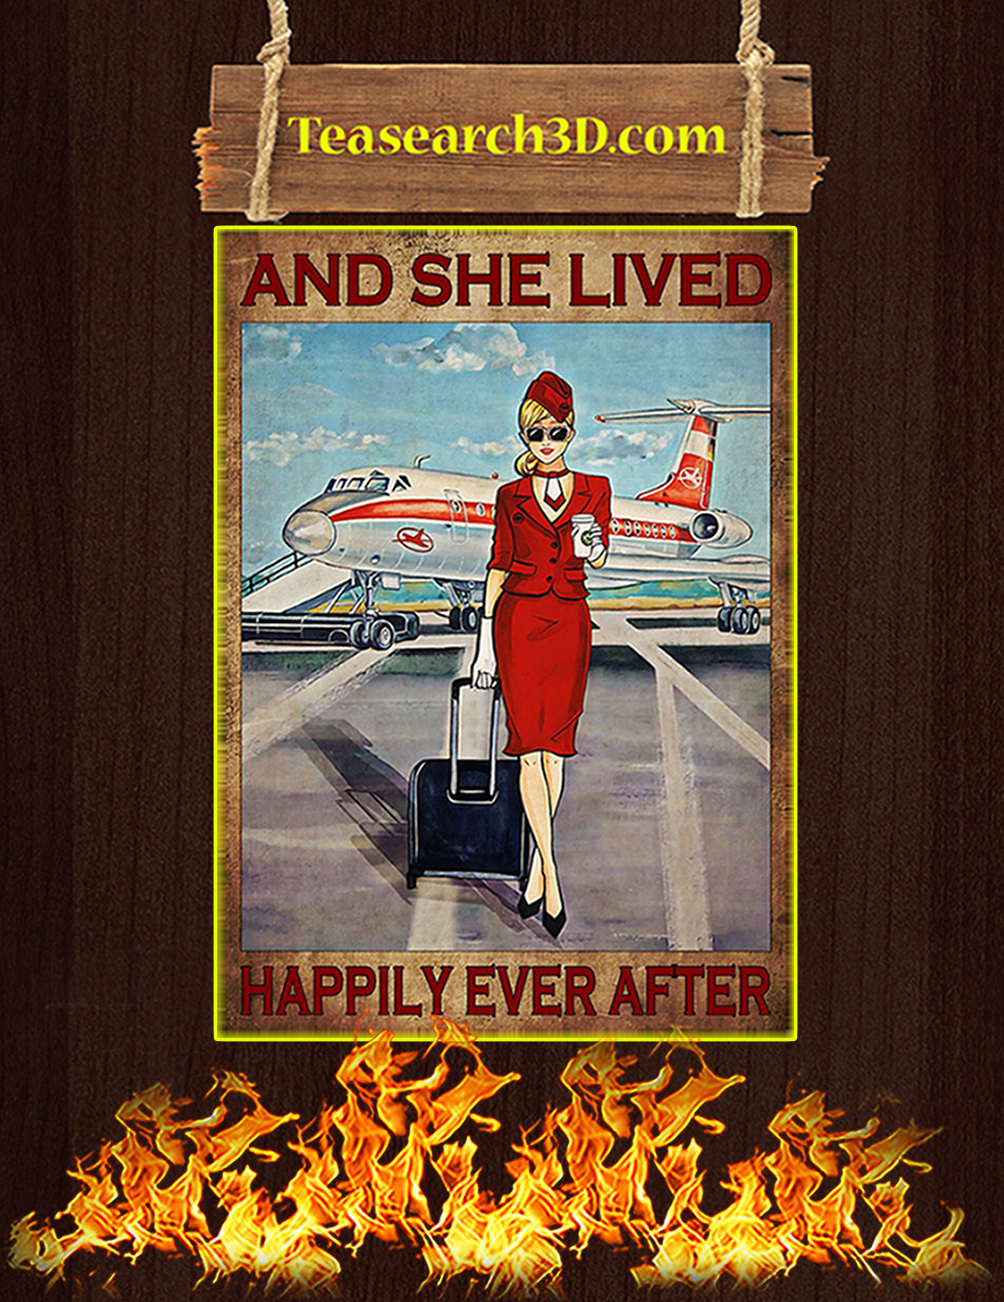 Flight attendant and she lived happily ever after red poster